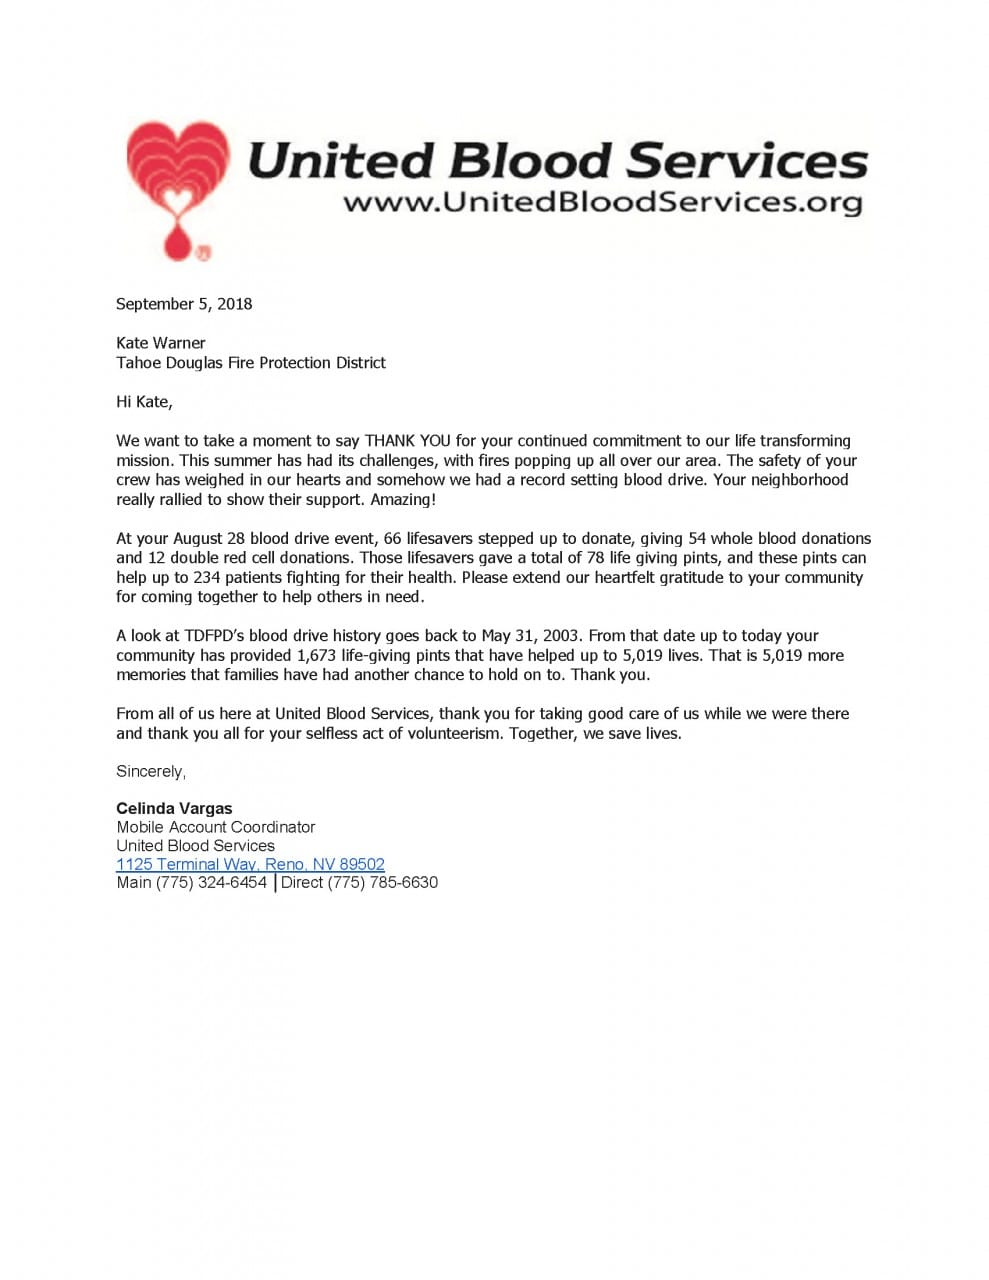 TAHOE DOUGLAS COMMUNITY SAVING LIVES WITH BLOOD DRIVES